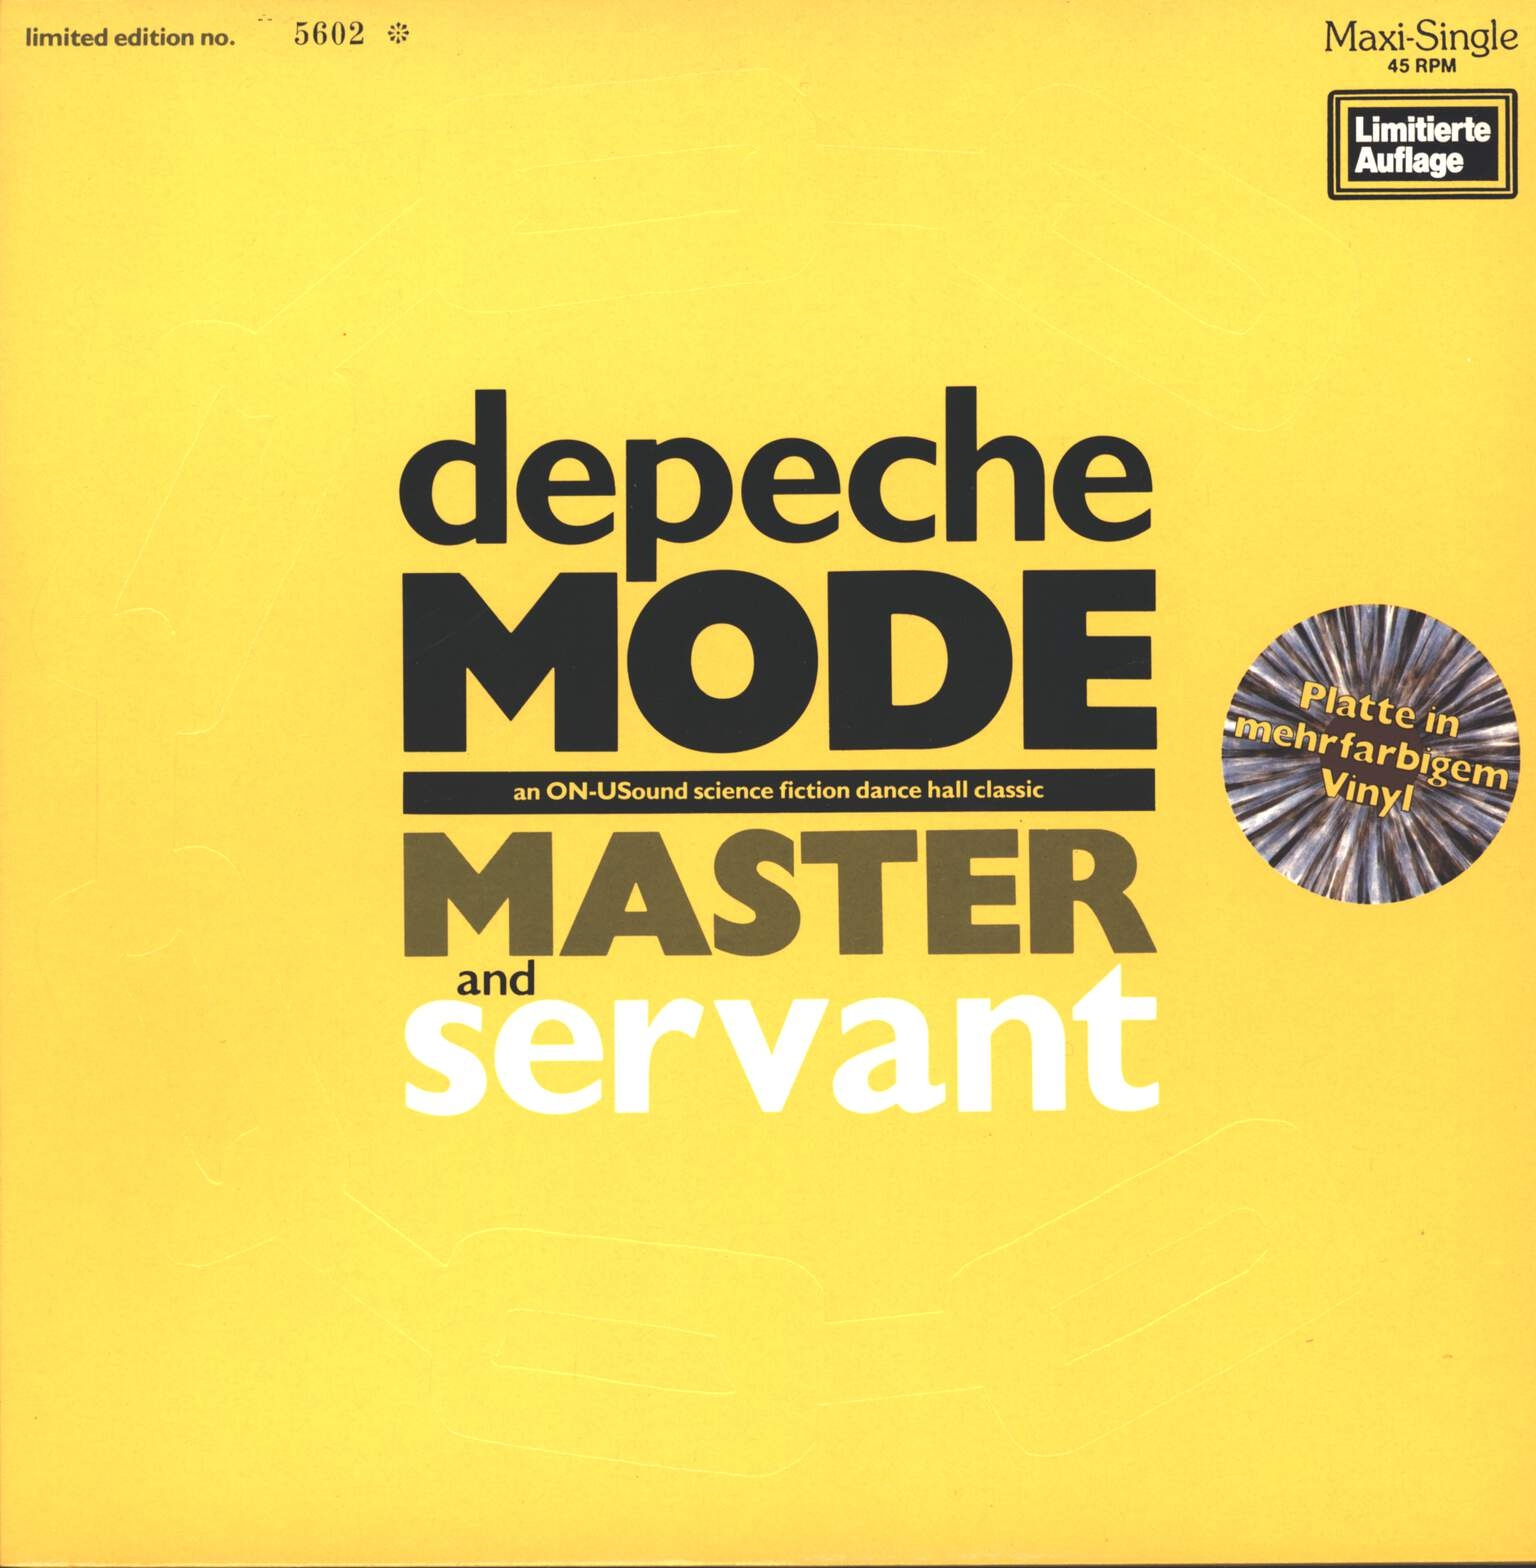 "Depeche Mode: Master And Servant (An ON-USound Science Fiction Dance Hall Classic), 12"" Maxi Single (Vinyl)"